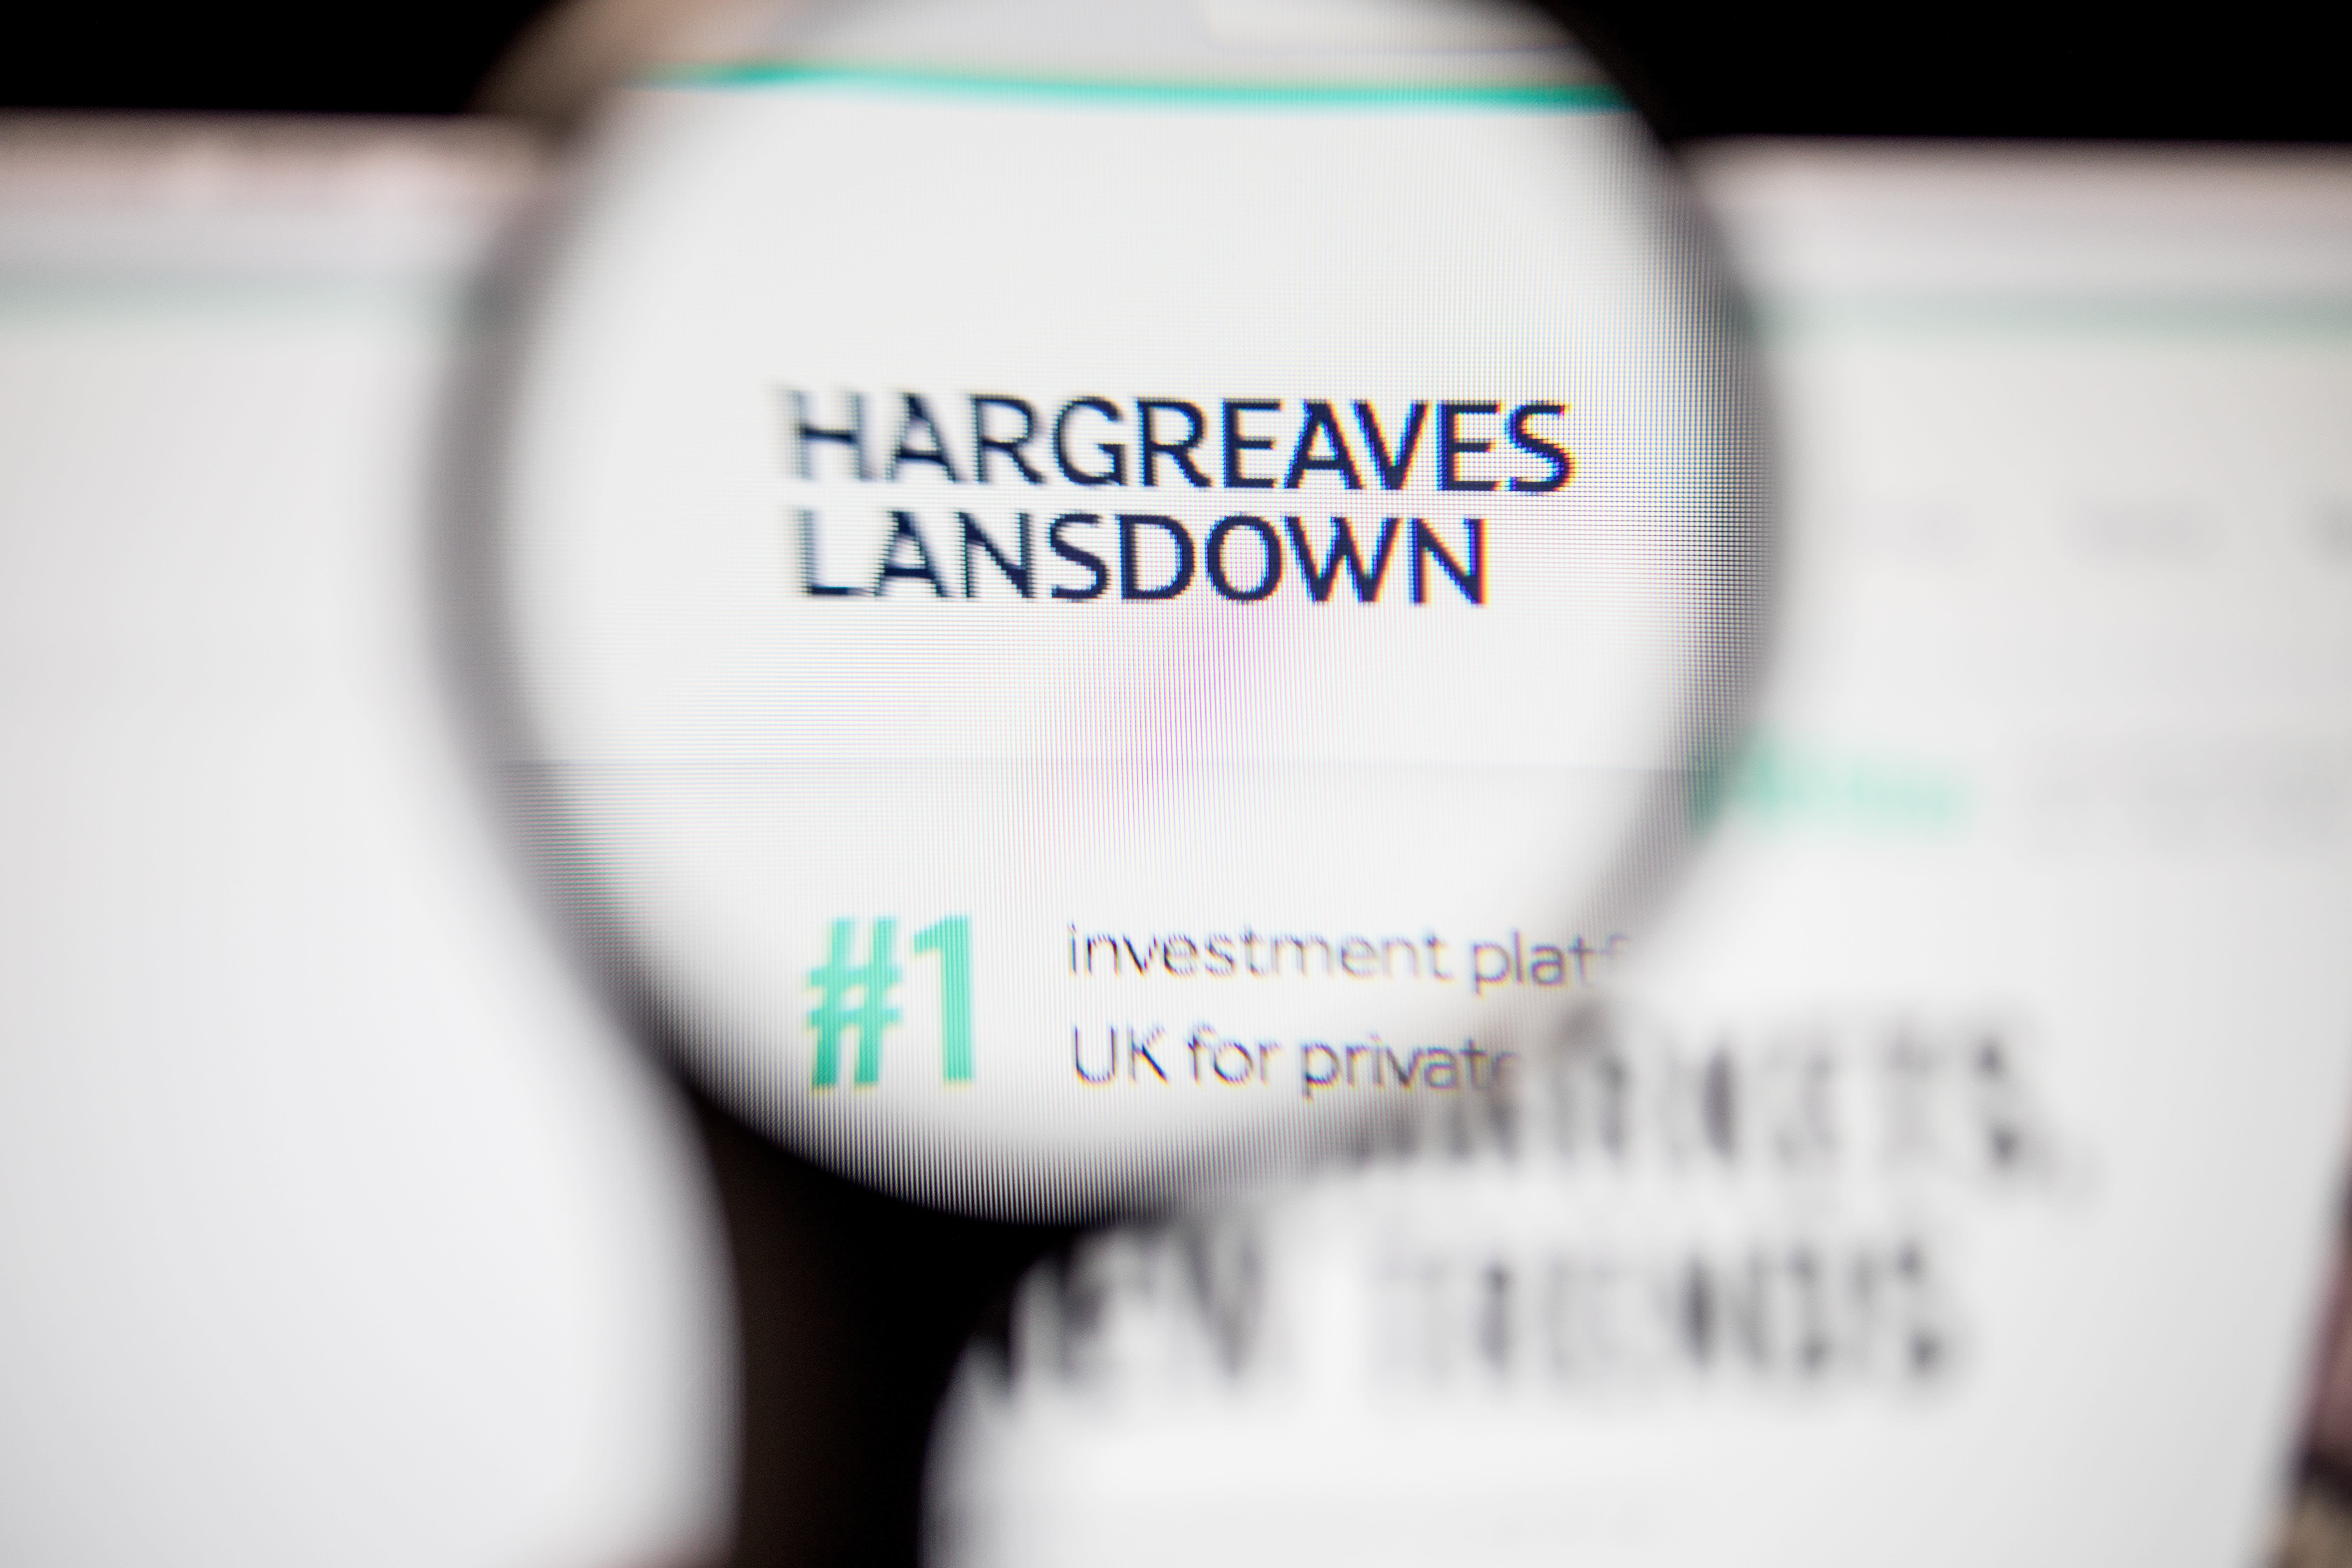 Hargreaves Lansdown adds £4.6bn of new business